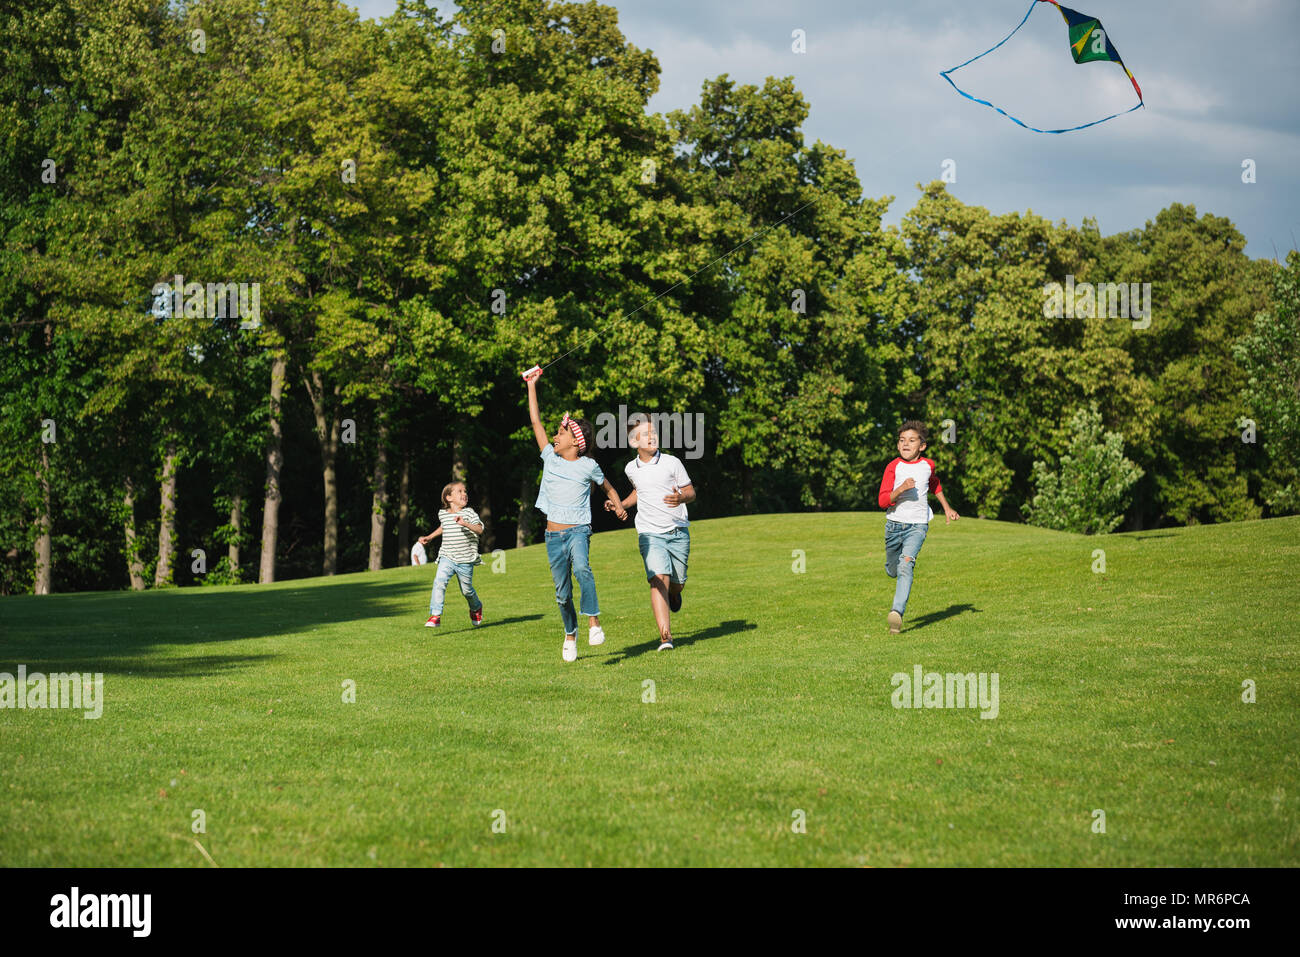 Cheerful multiethnic kids playing together while running with kite in park - Stock Image